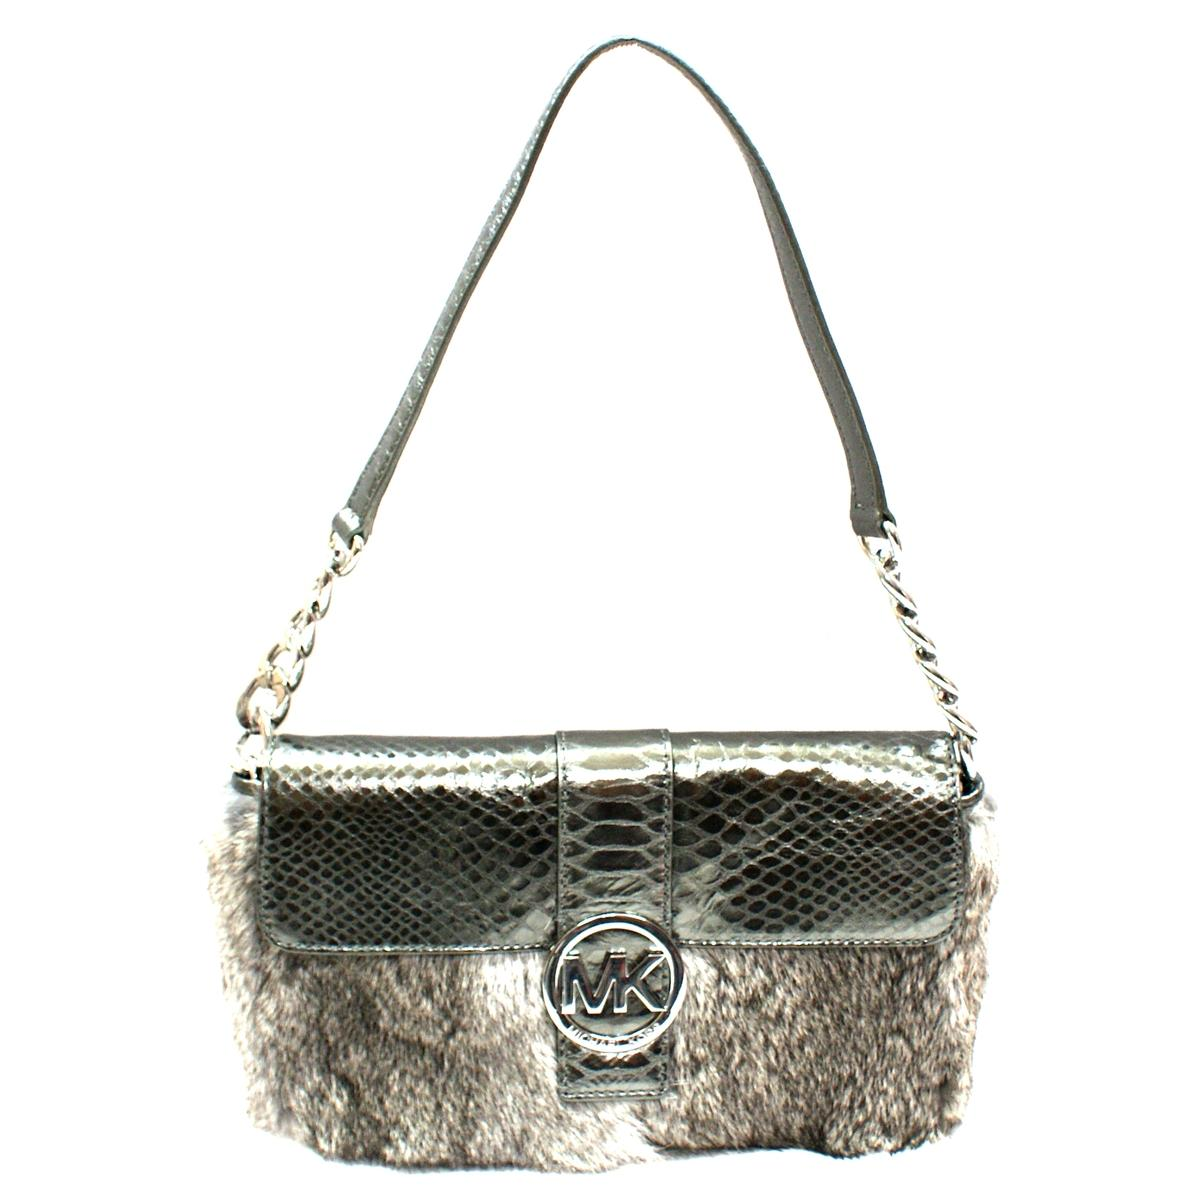 Michael Kors Fur Shoulder Bag 31